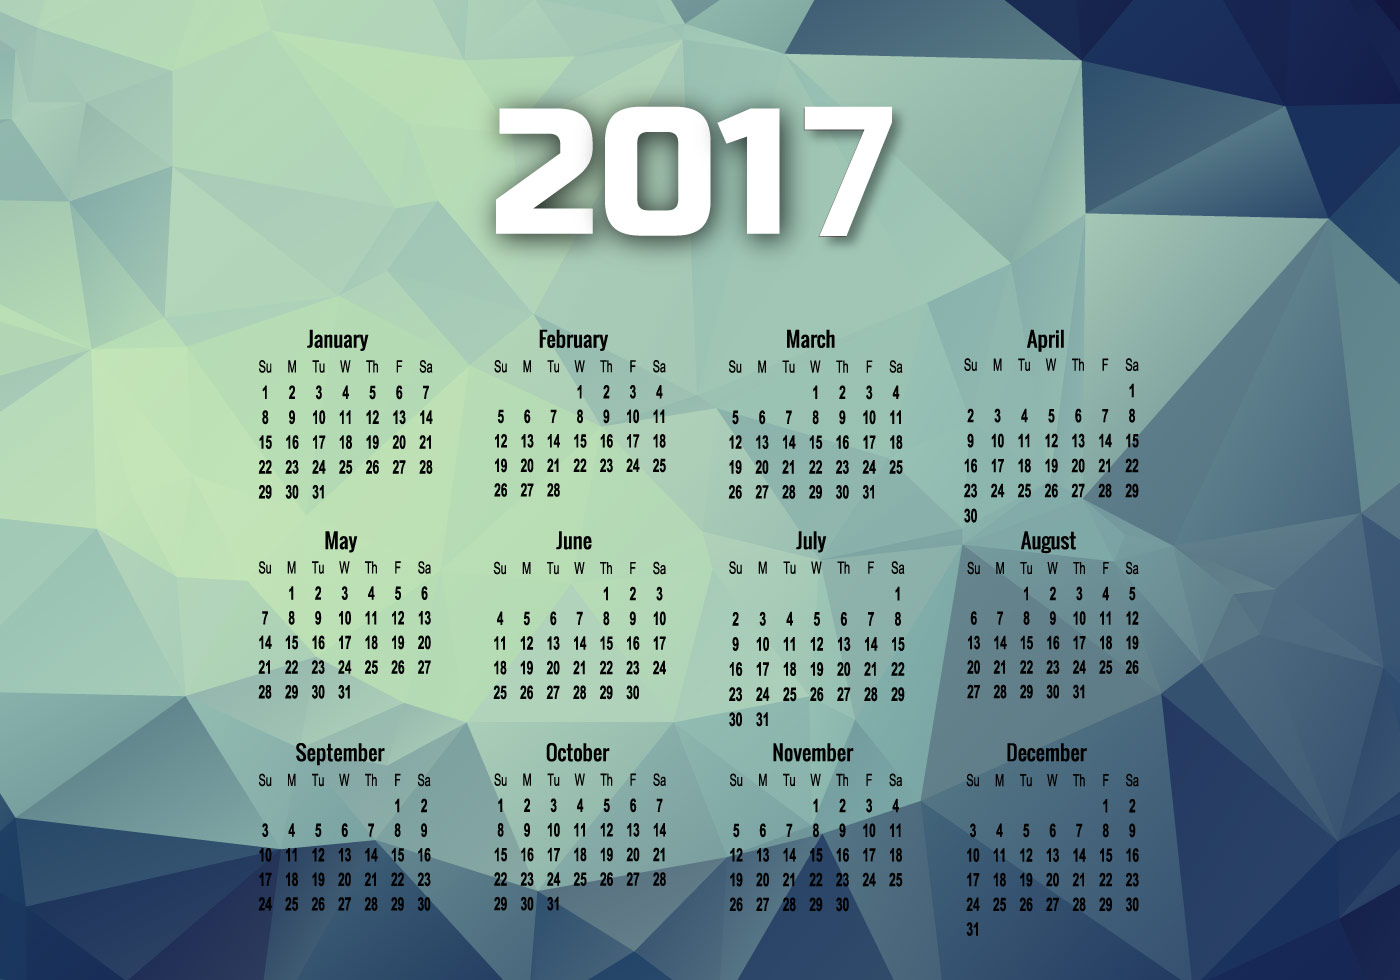 year 2017 calendar with months download free vectors